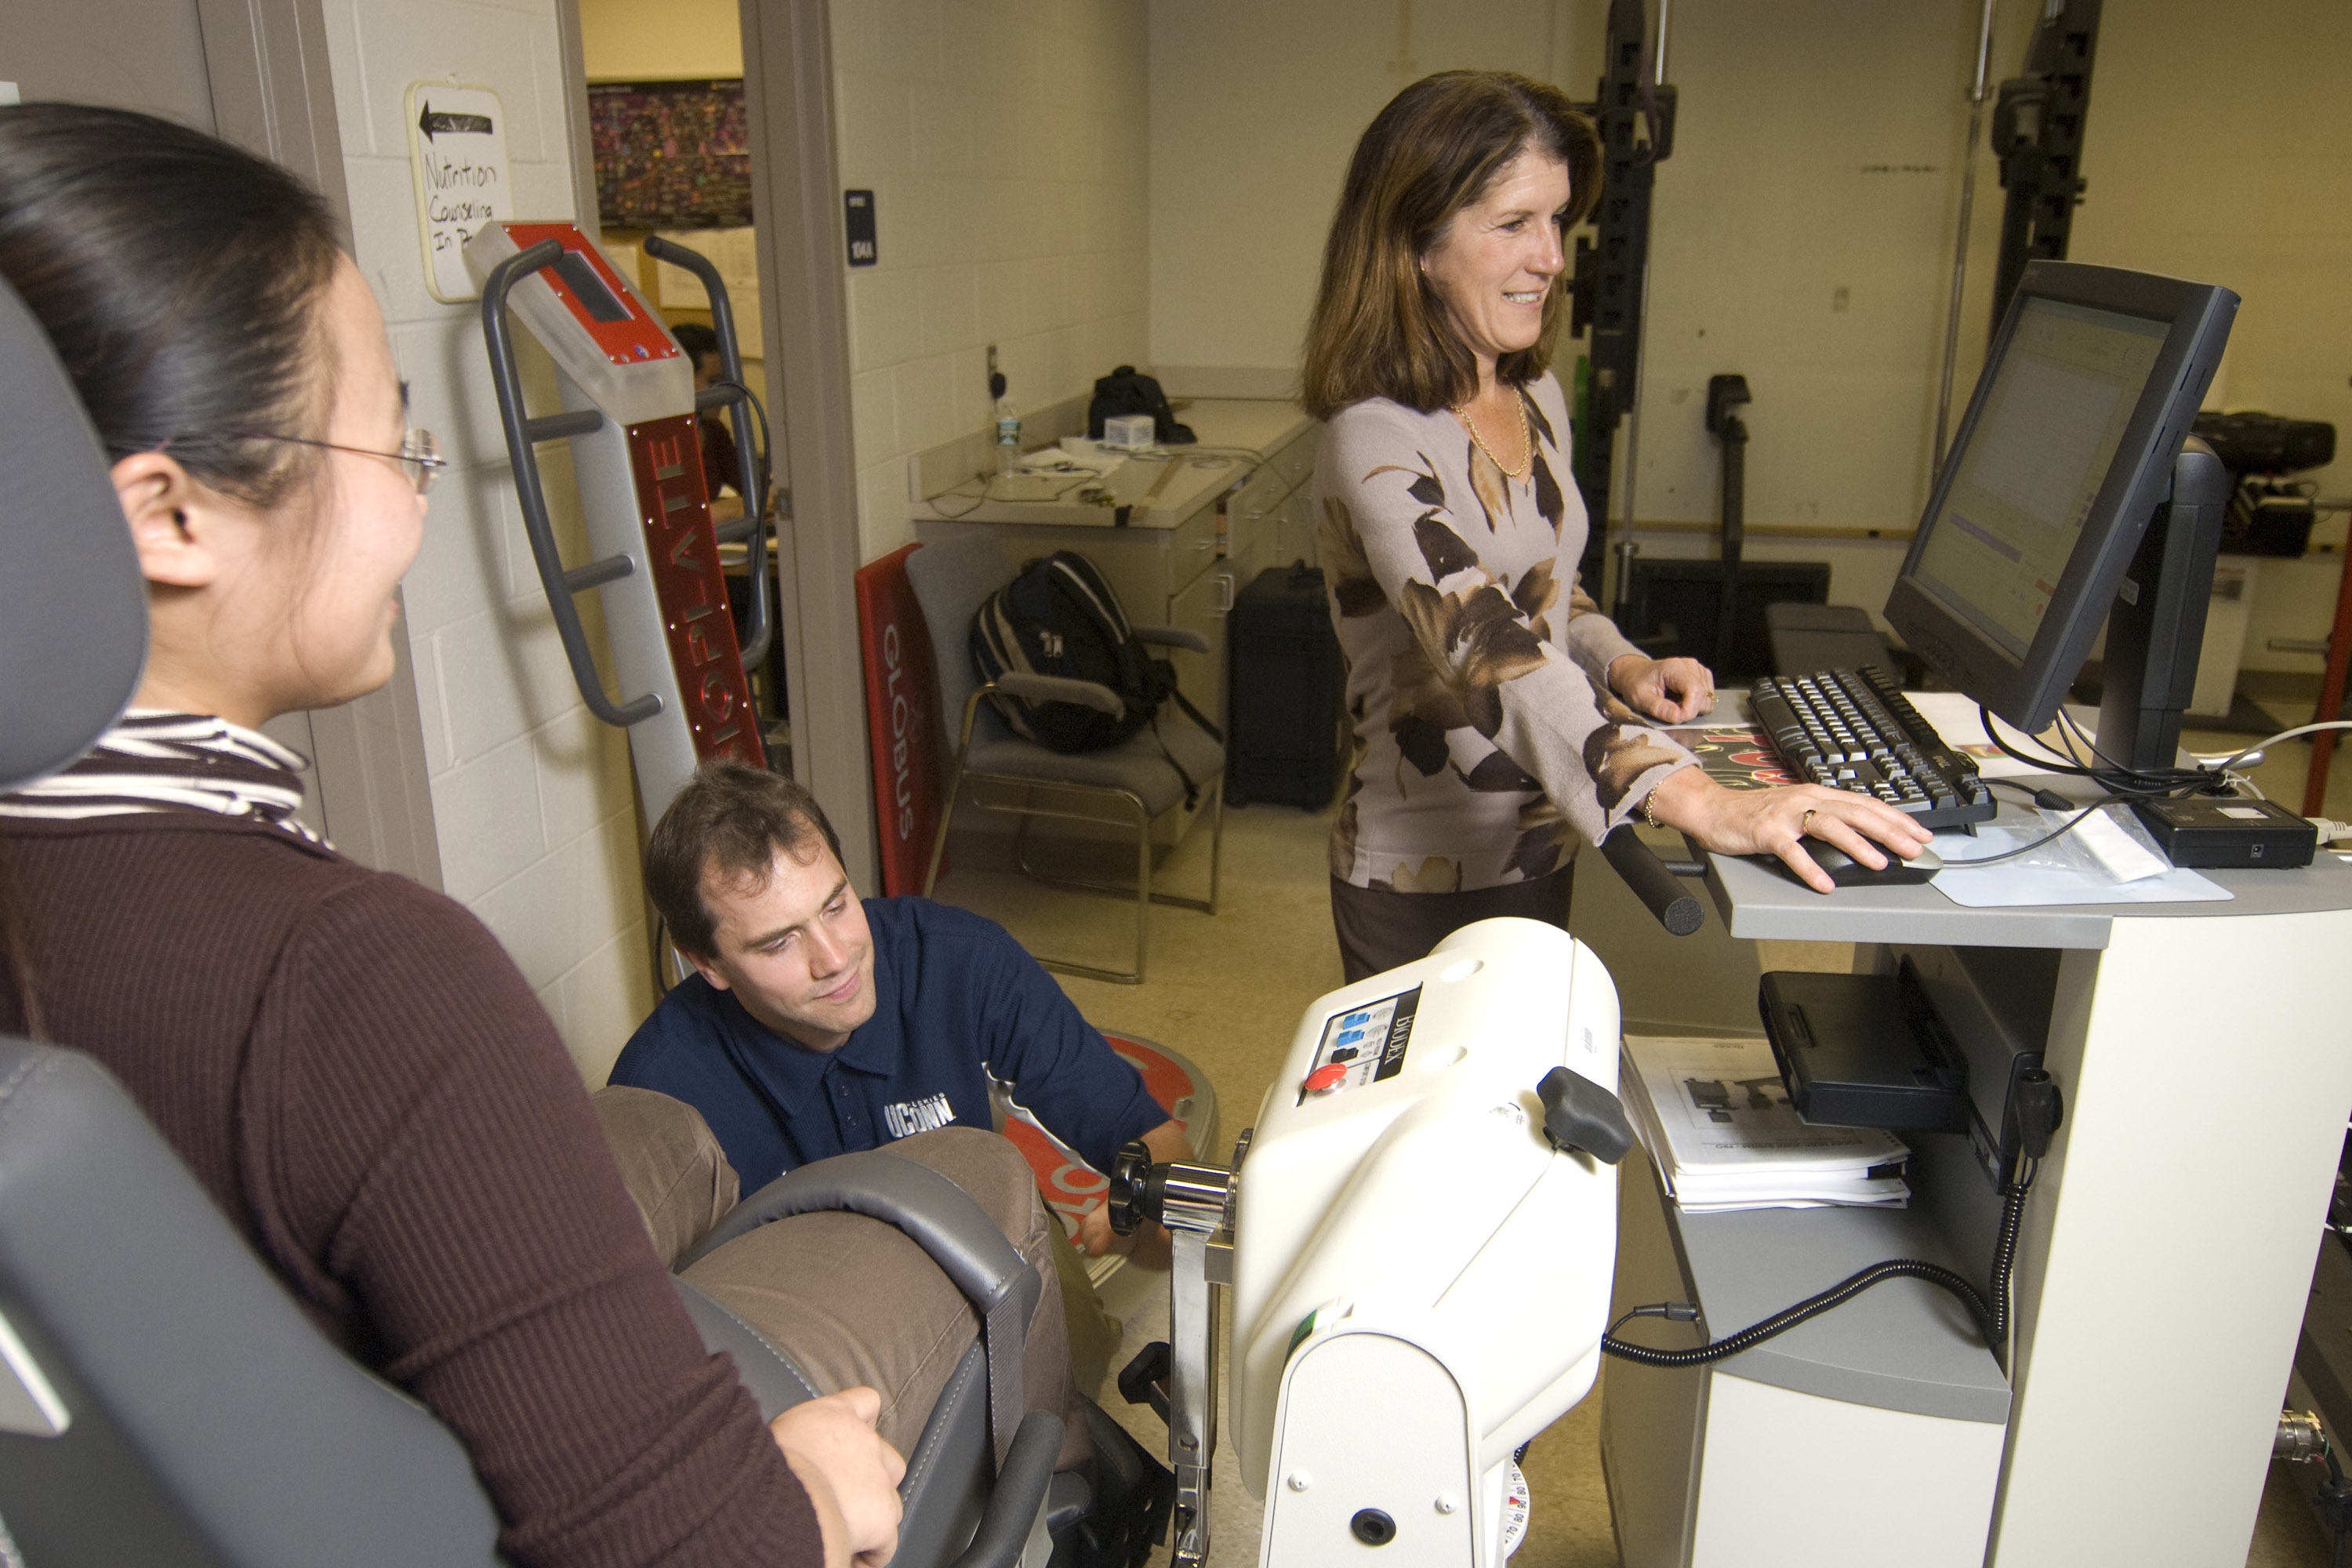 Linda Pescatella (back center), professor of kinesiology, and Matthew Kostek, graduate assistant in kinesiology, (front left), analyze a student attached to a Biodex machine in a lab in the Kinesiology department.